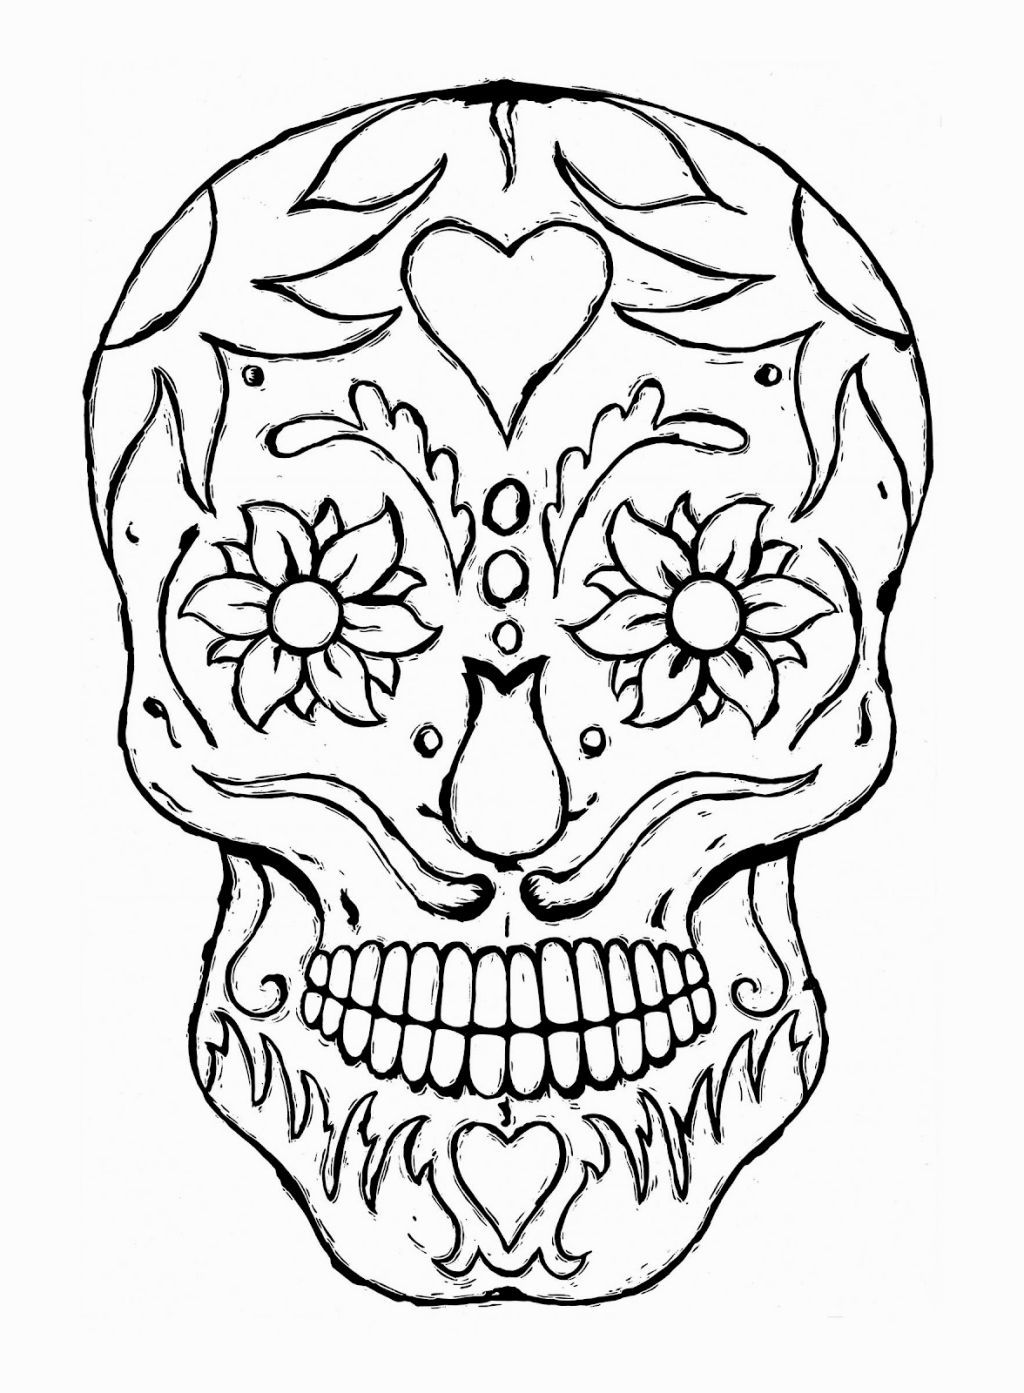 Scary Coloring Pages Halloween Coloring Pages Skull Coloring Pages Animal Coloring Pages